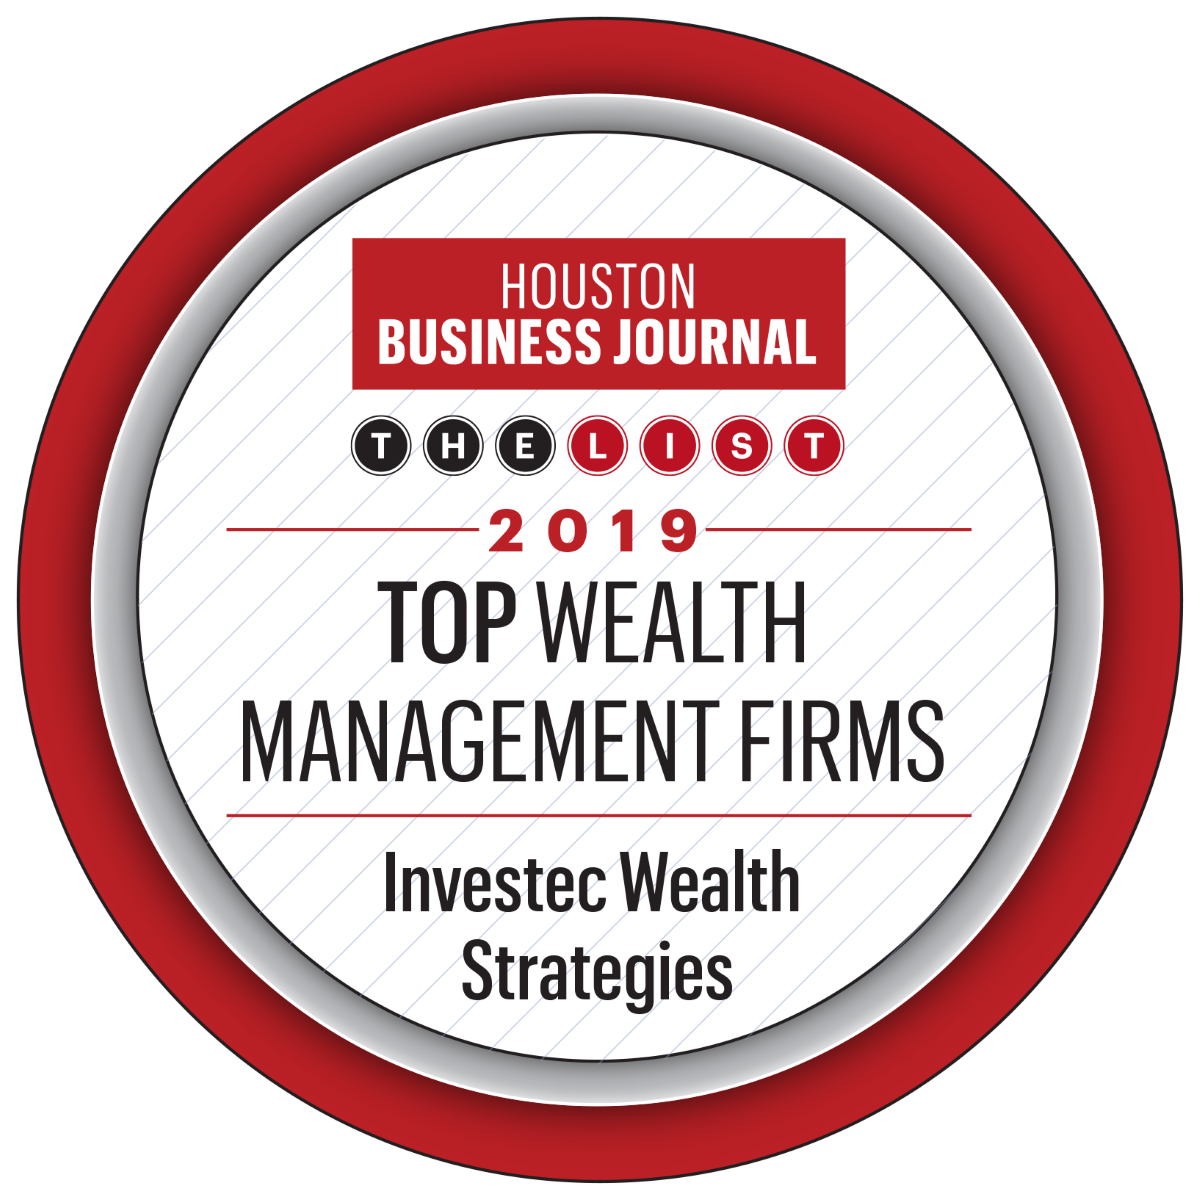 Investec - Houston Business Journal Top Wealth Management Firms, 2019